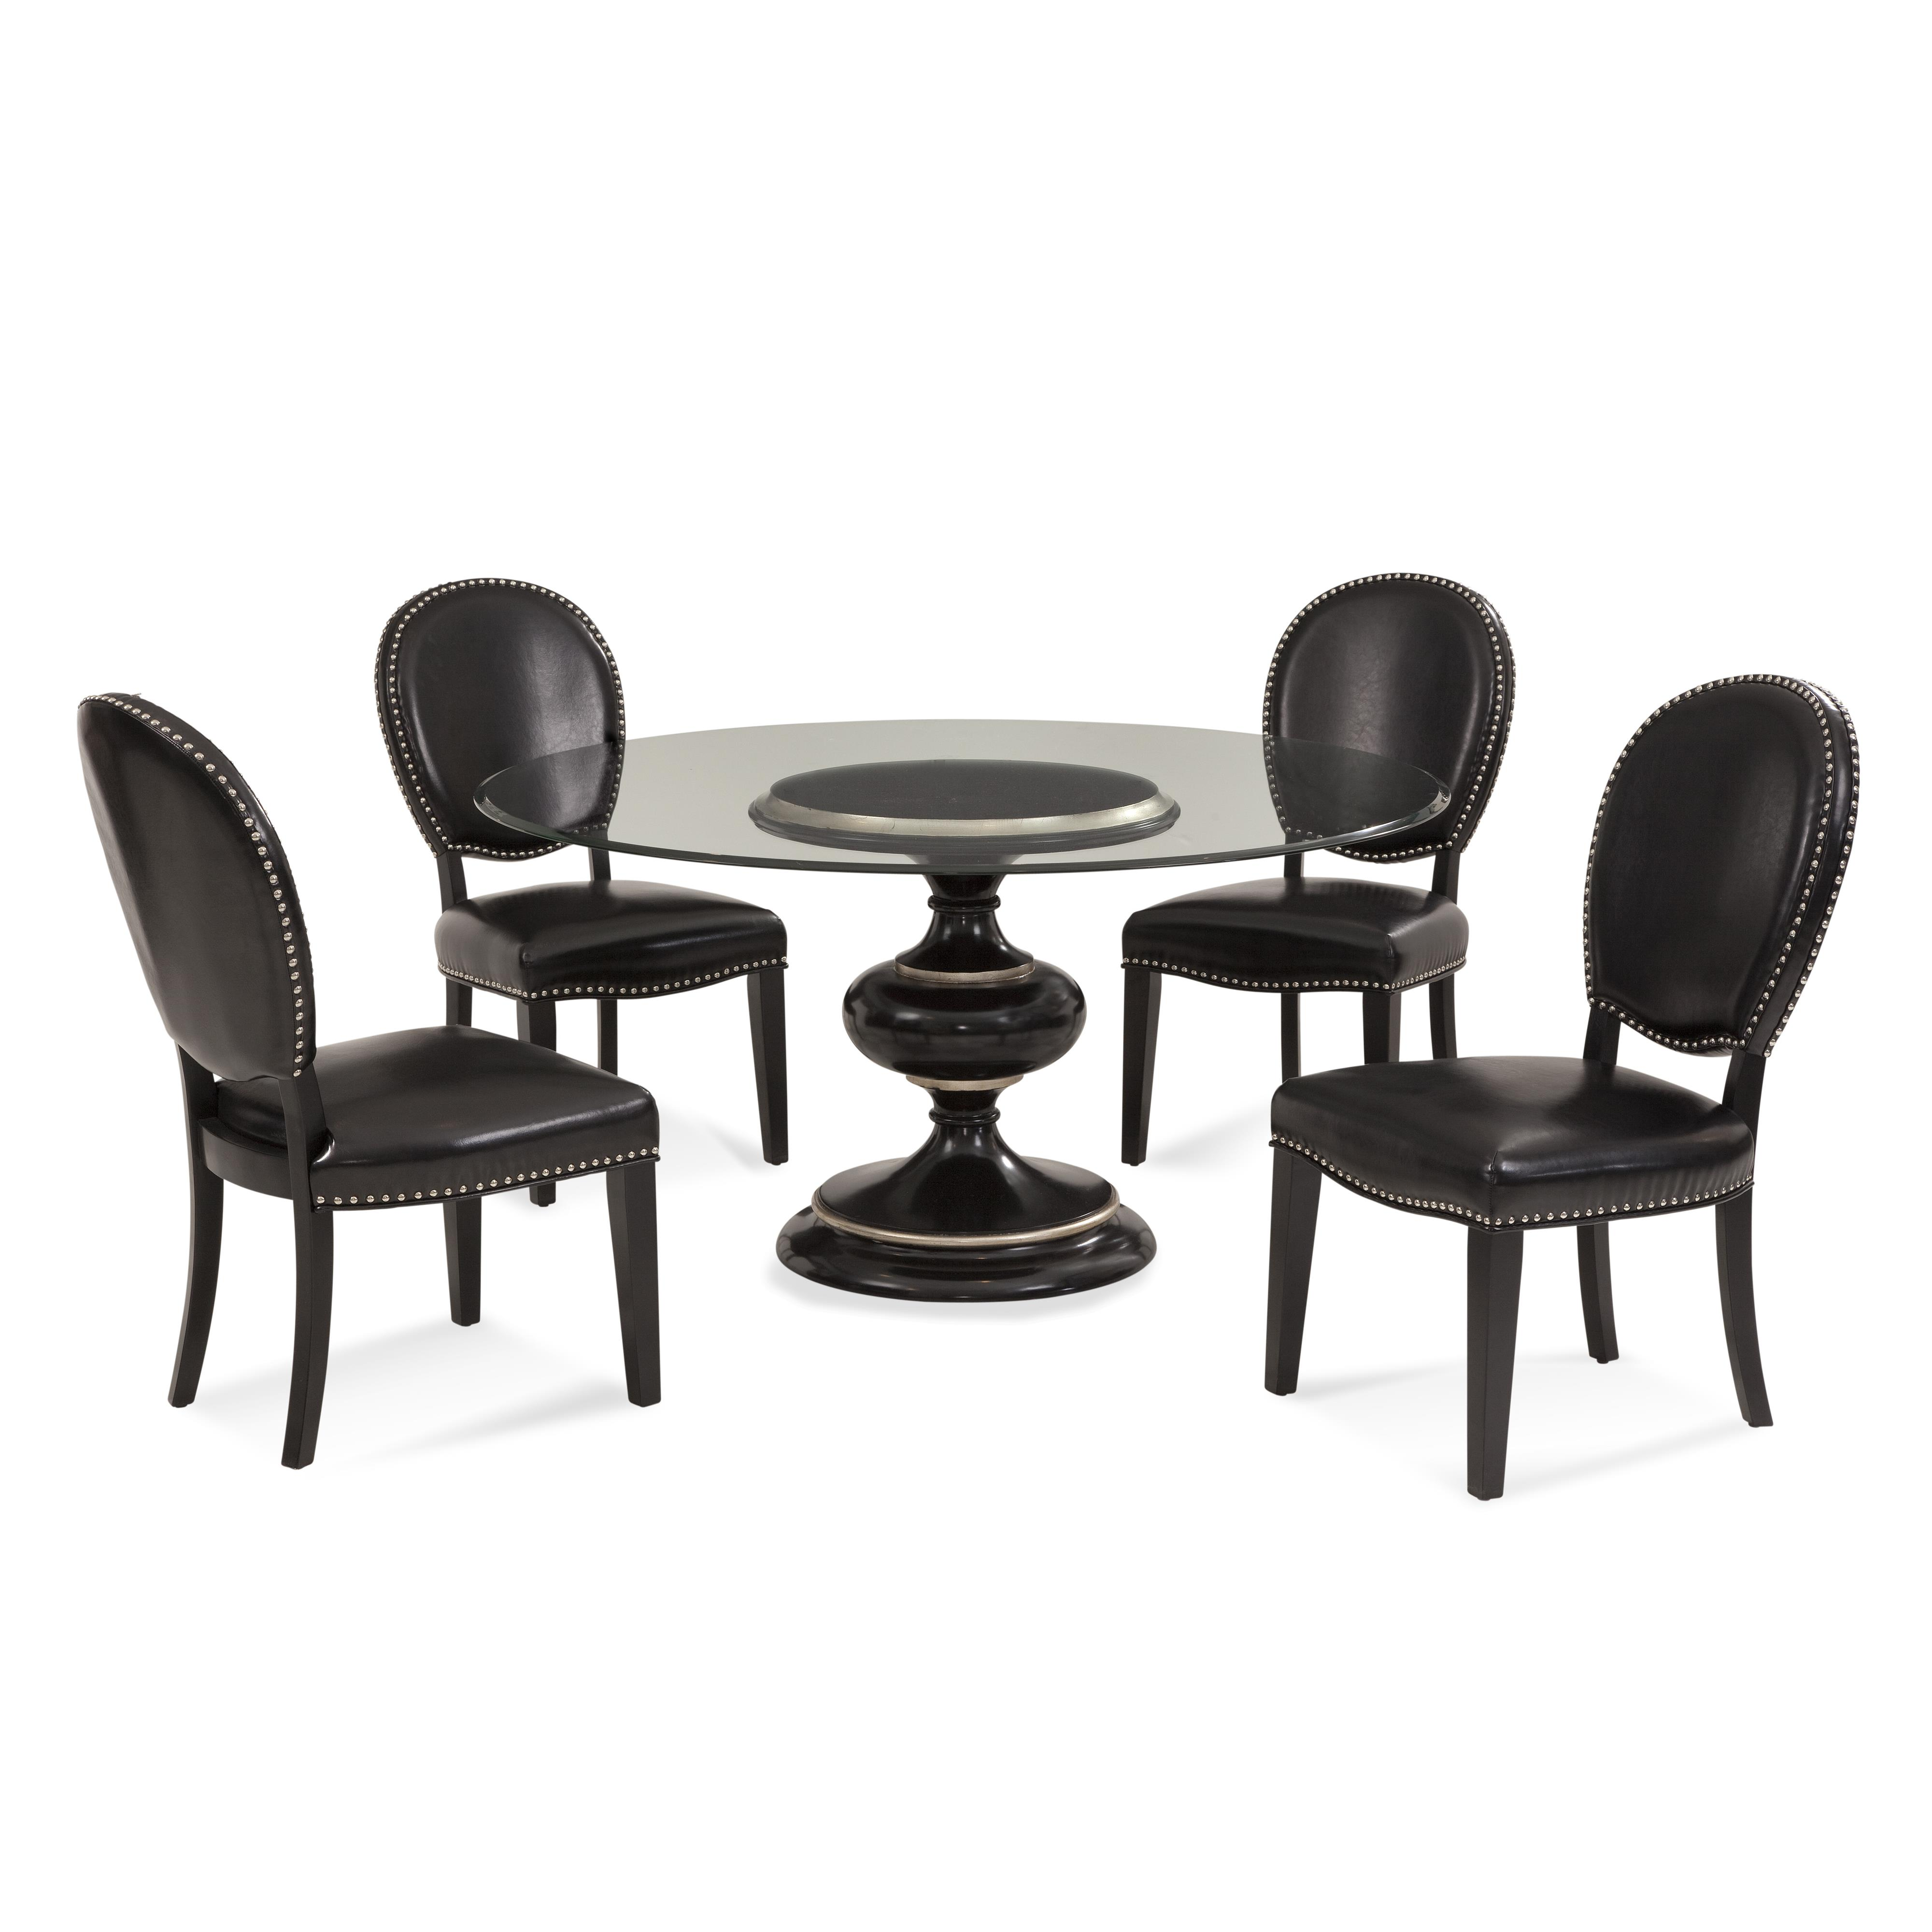 Hollywood Glam Covington Casual Dining Set by Bassett Mirror at Alison Craig Home Furnishings